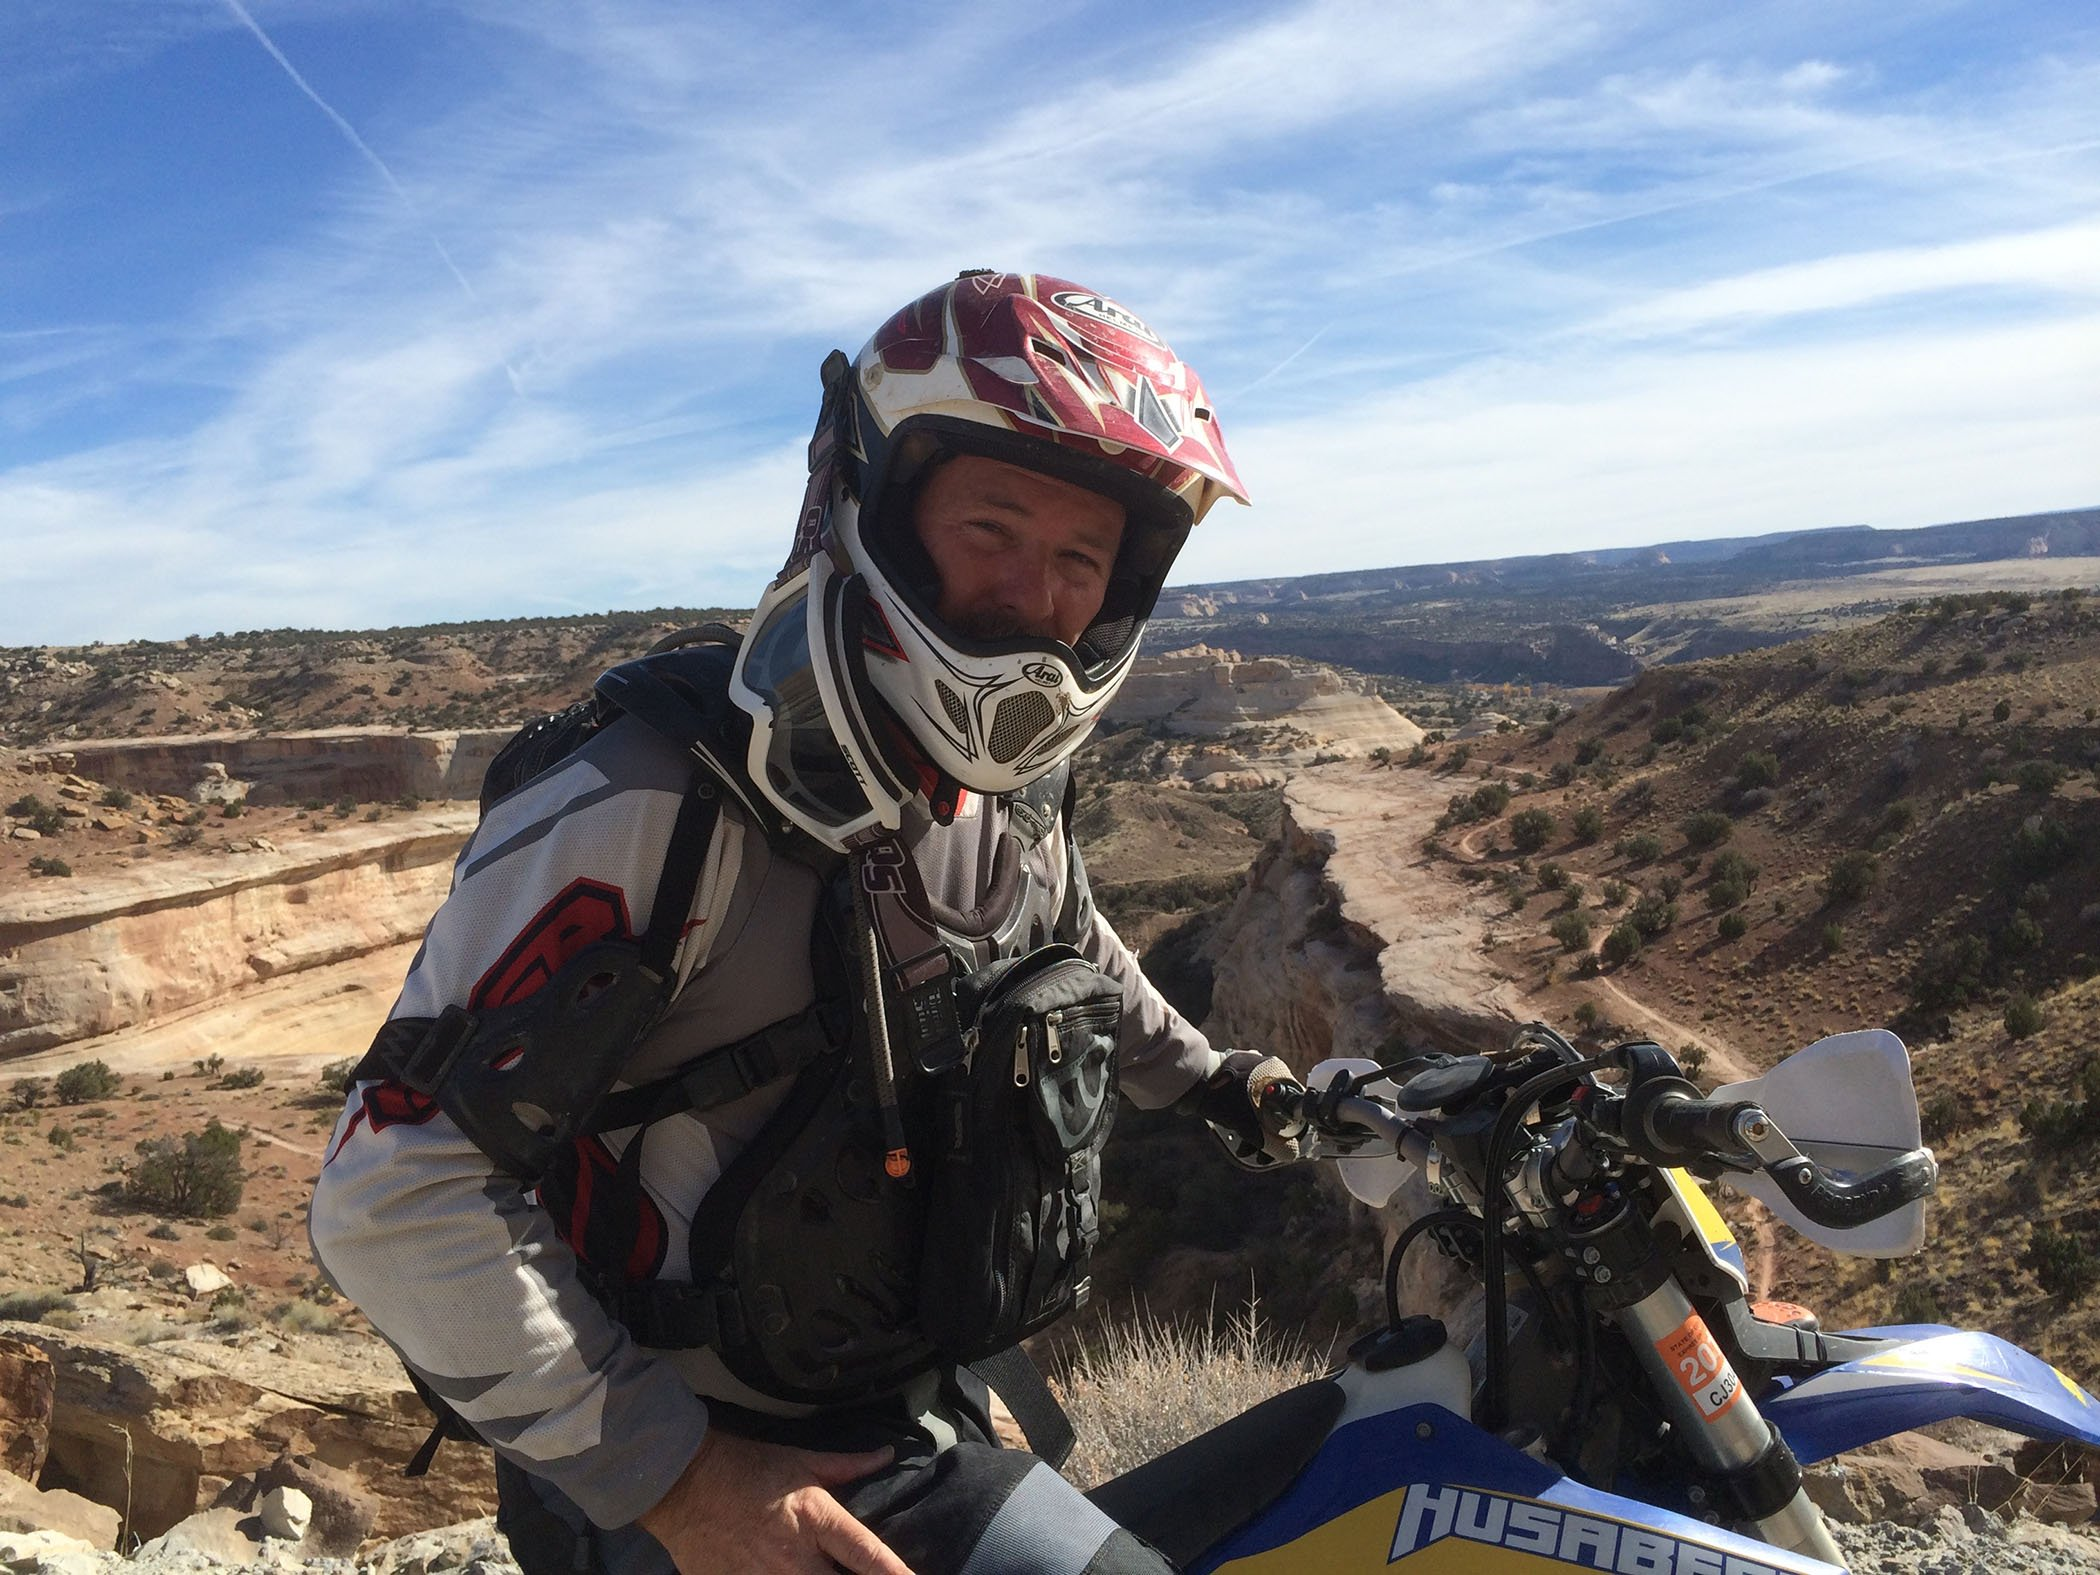 Greg Loftin, our Service Now Expert sits on his dirt bike in Denver.